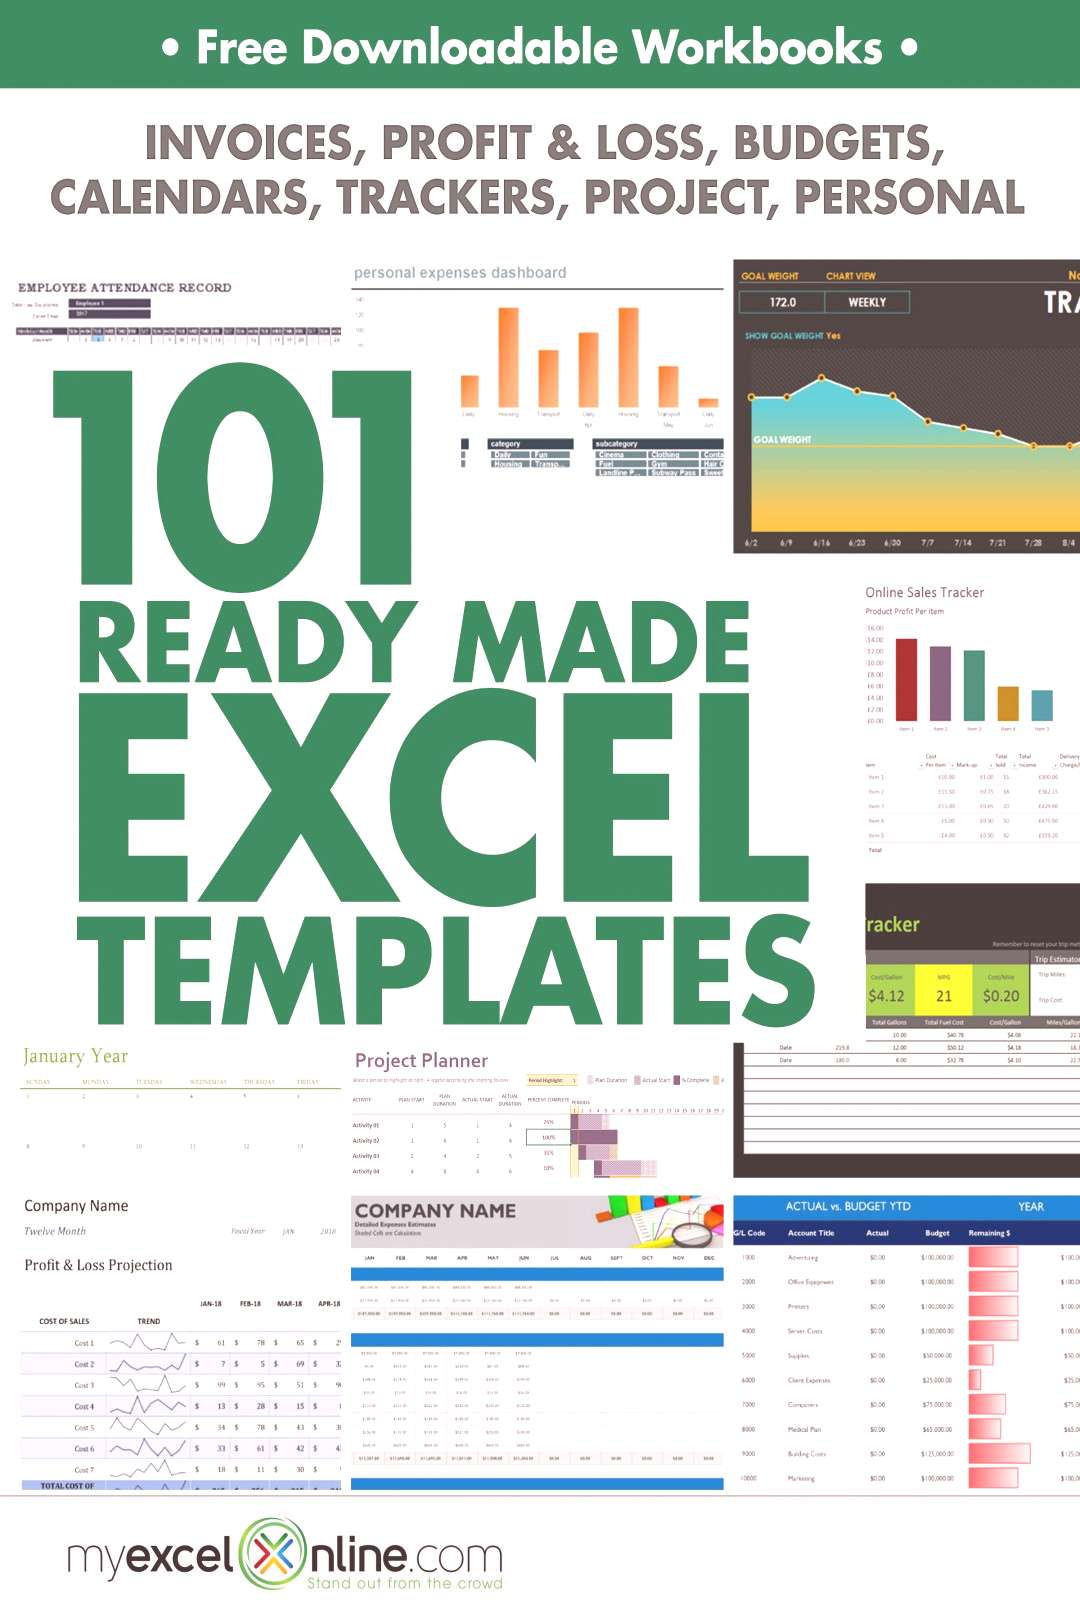 Materials science  microsoft excel templates, microsoft office free, microsoft logo, microsoft co